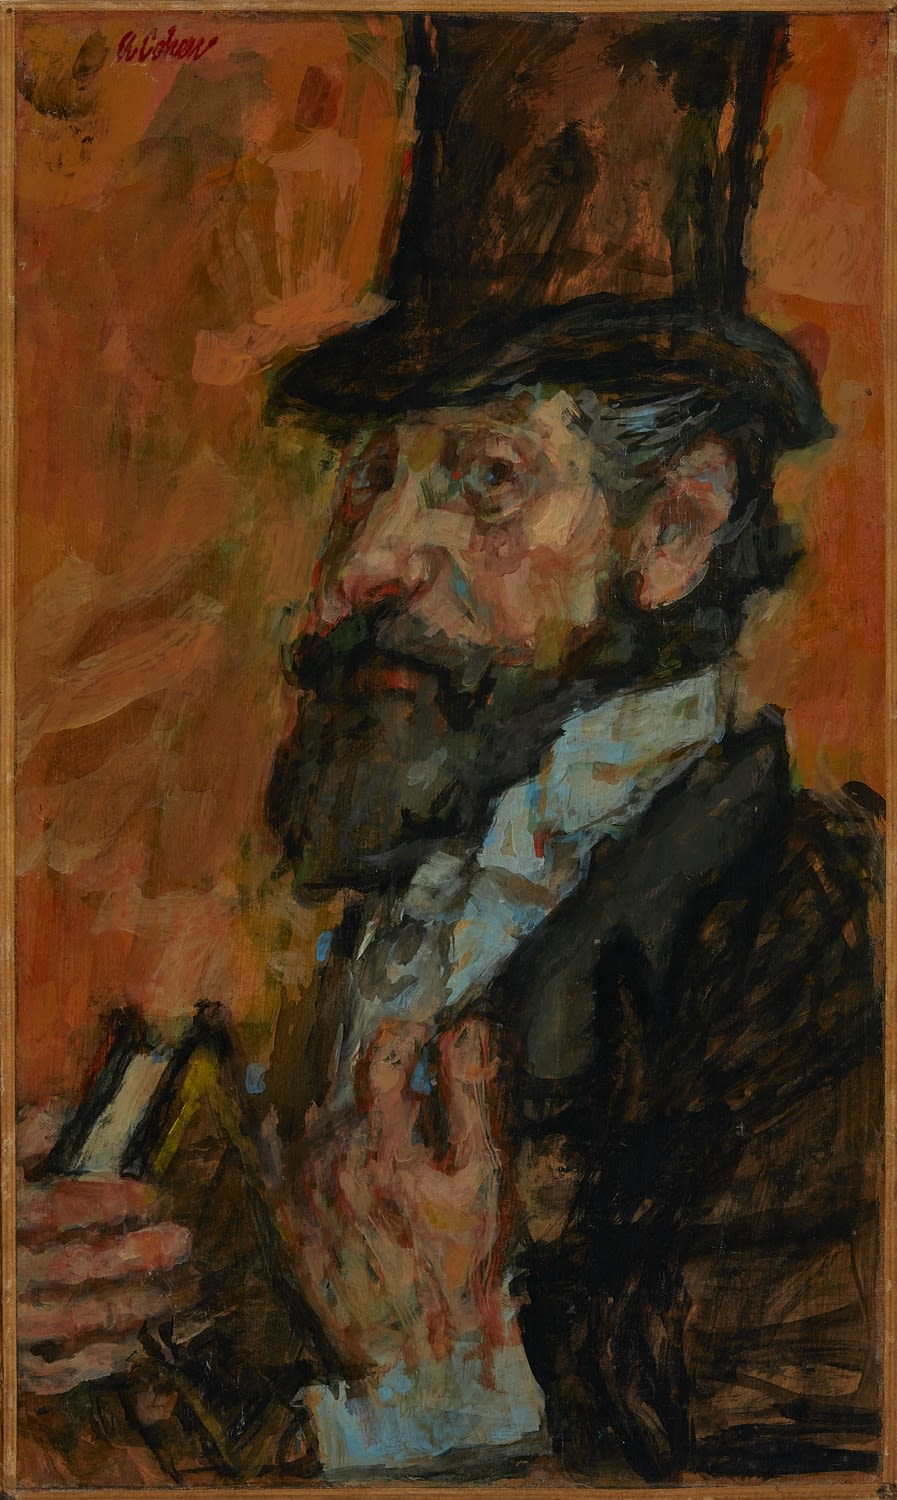 Alfred Cohen (1920-2001) The Rabbi from Dublin c. 1958 Oil on board 53.3 x 30.5 cm Private Collection © Estate of Alfred Cohen 2020